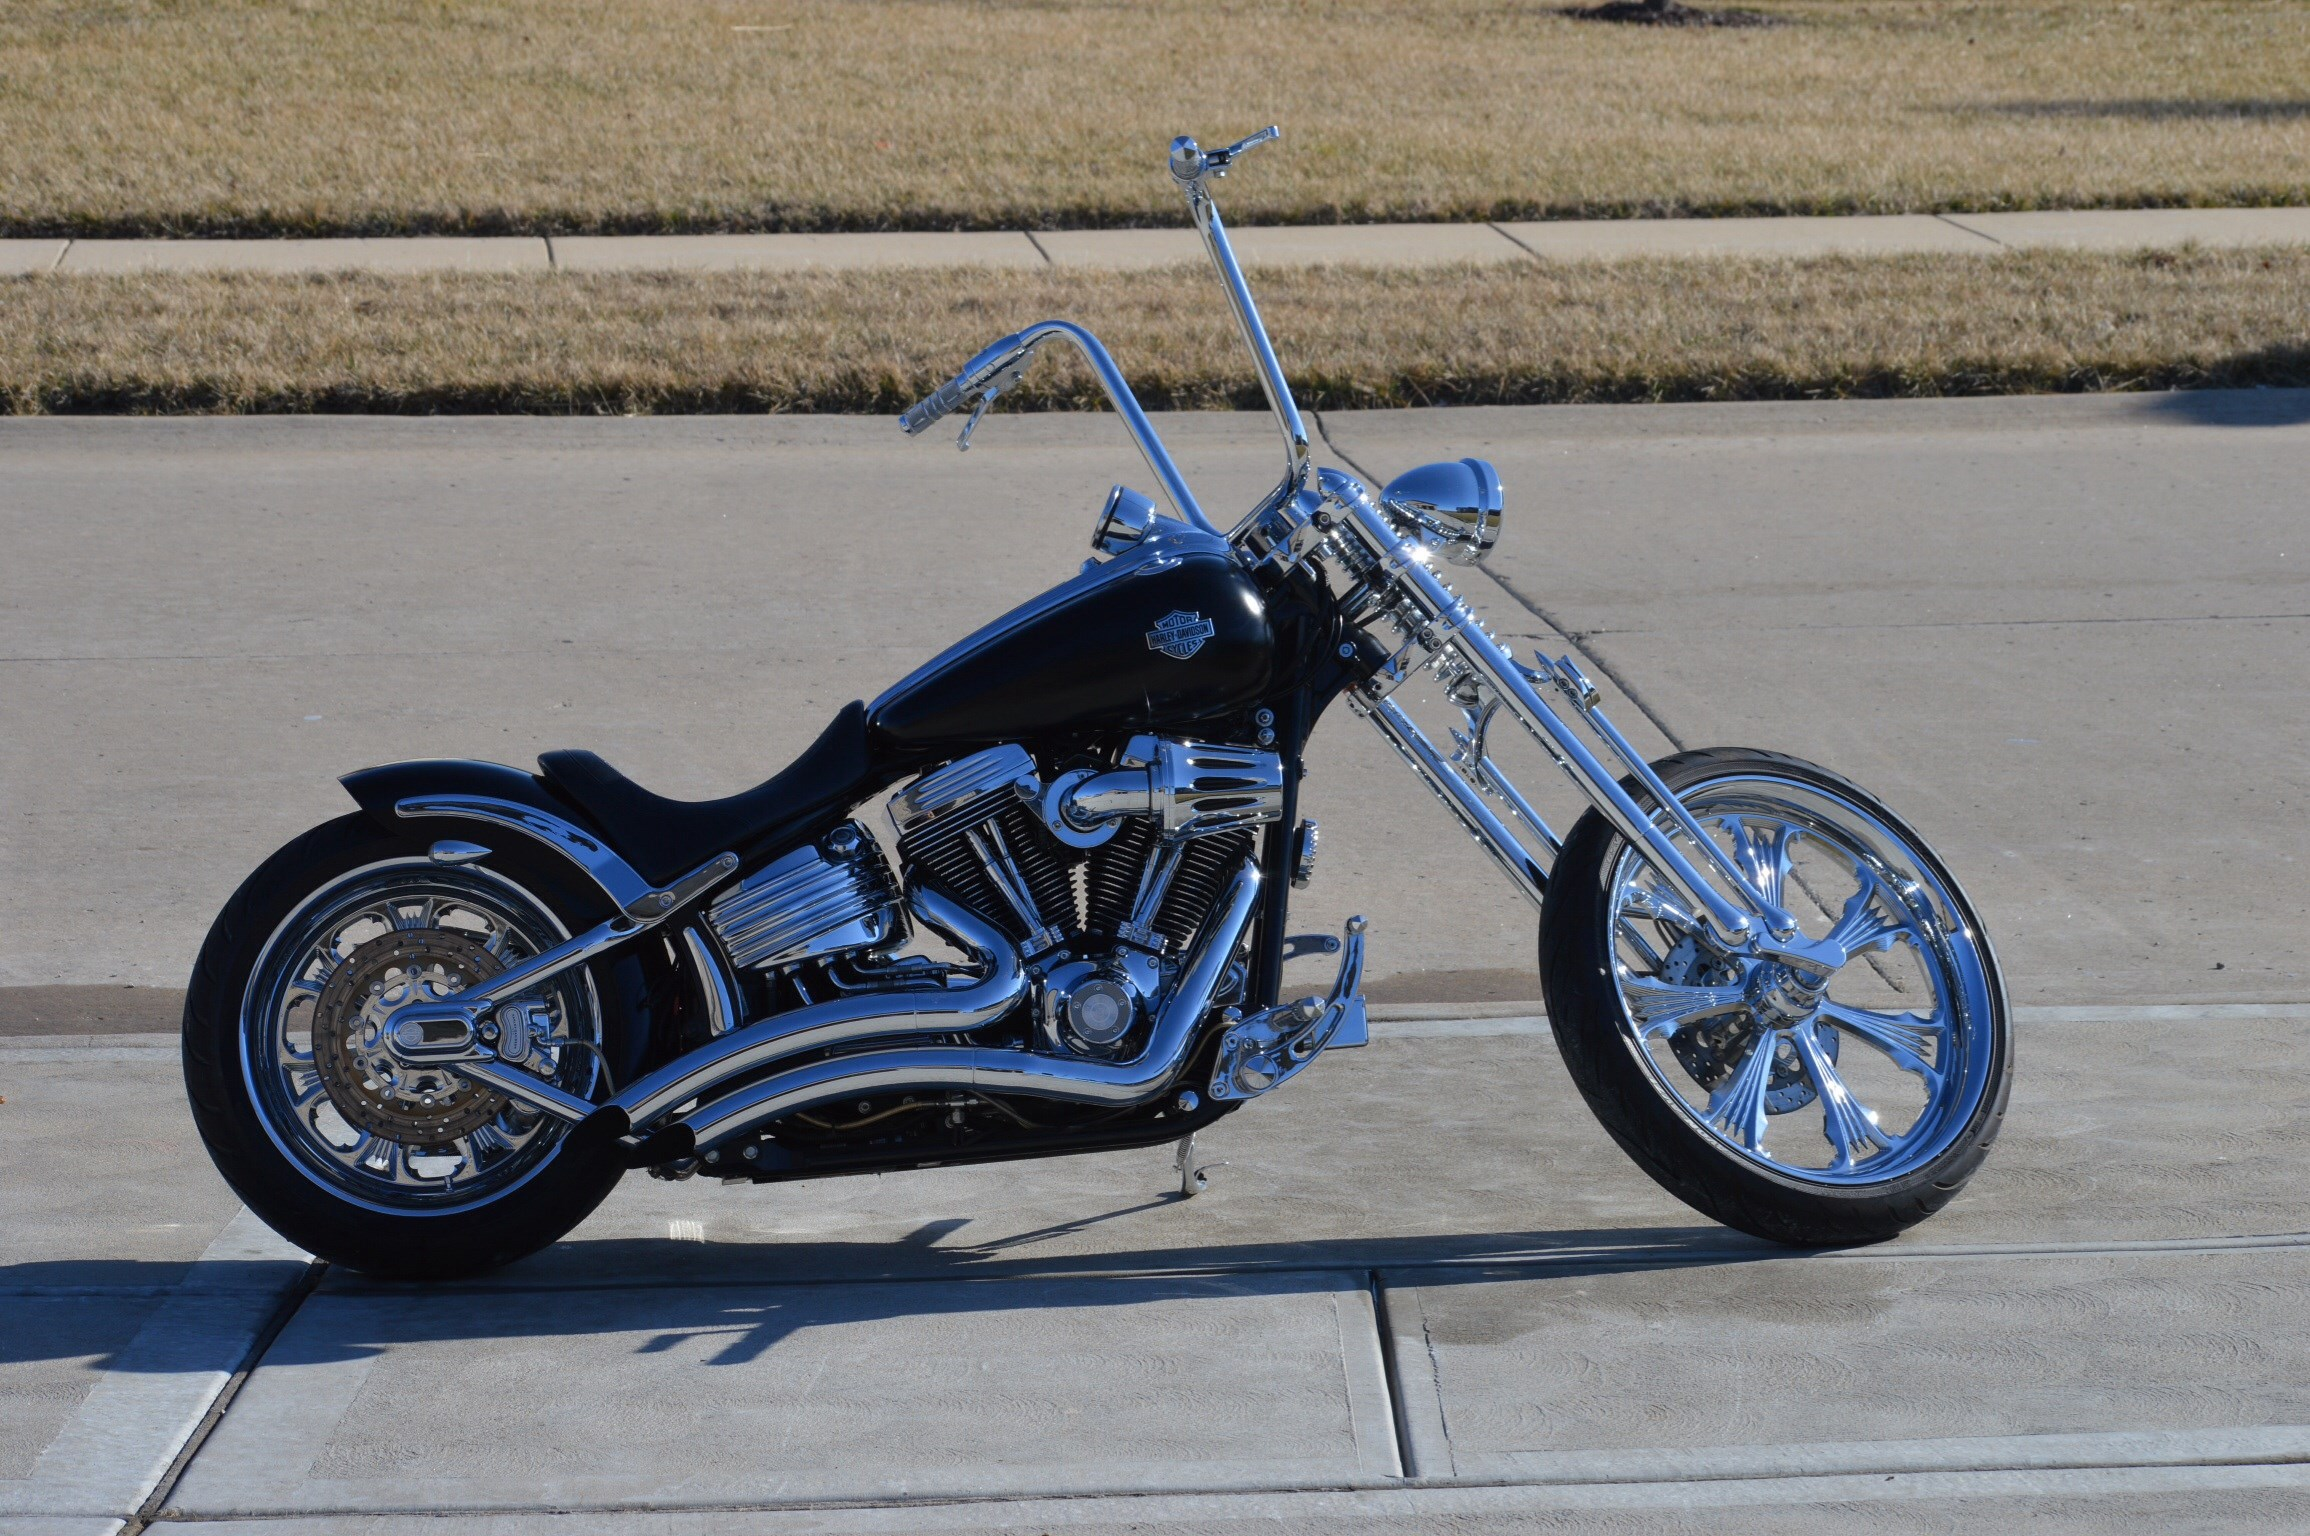 Harley Davidson Fxcwc Rocker C For Sale